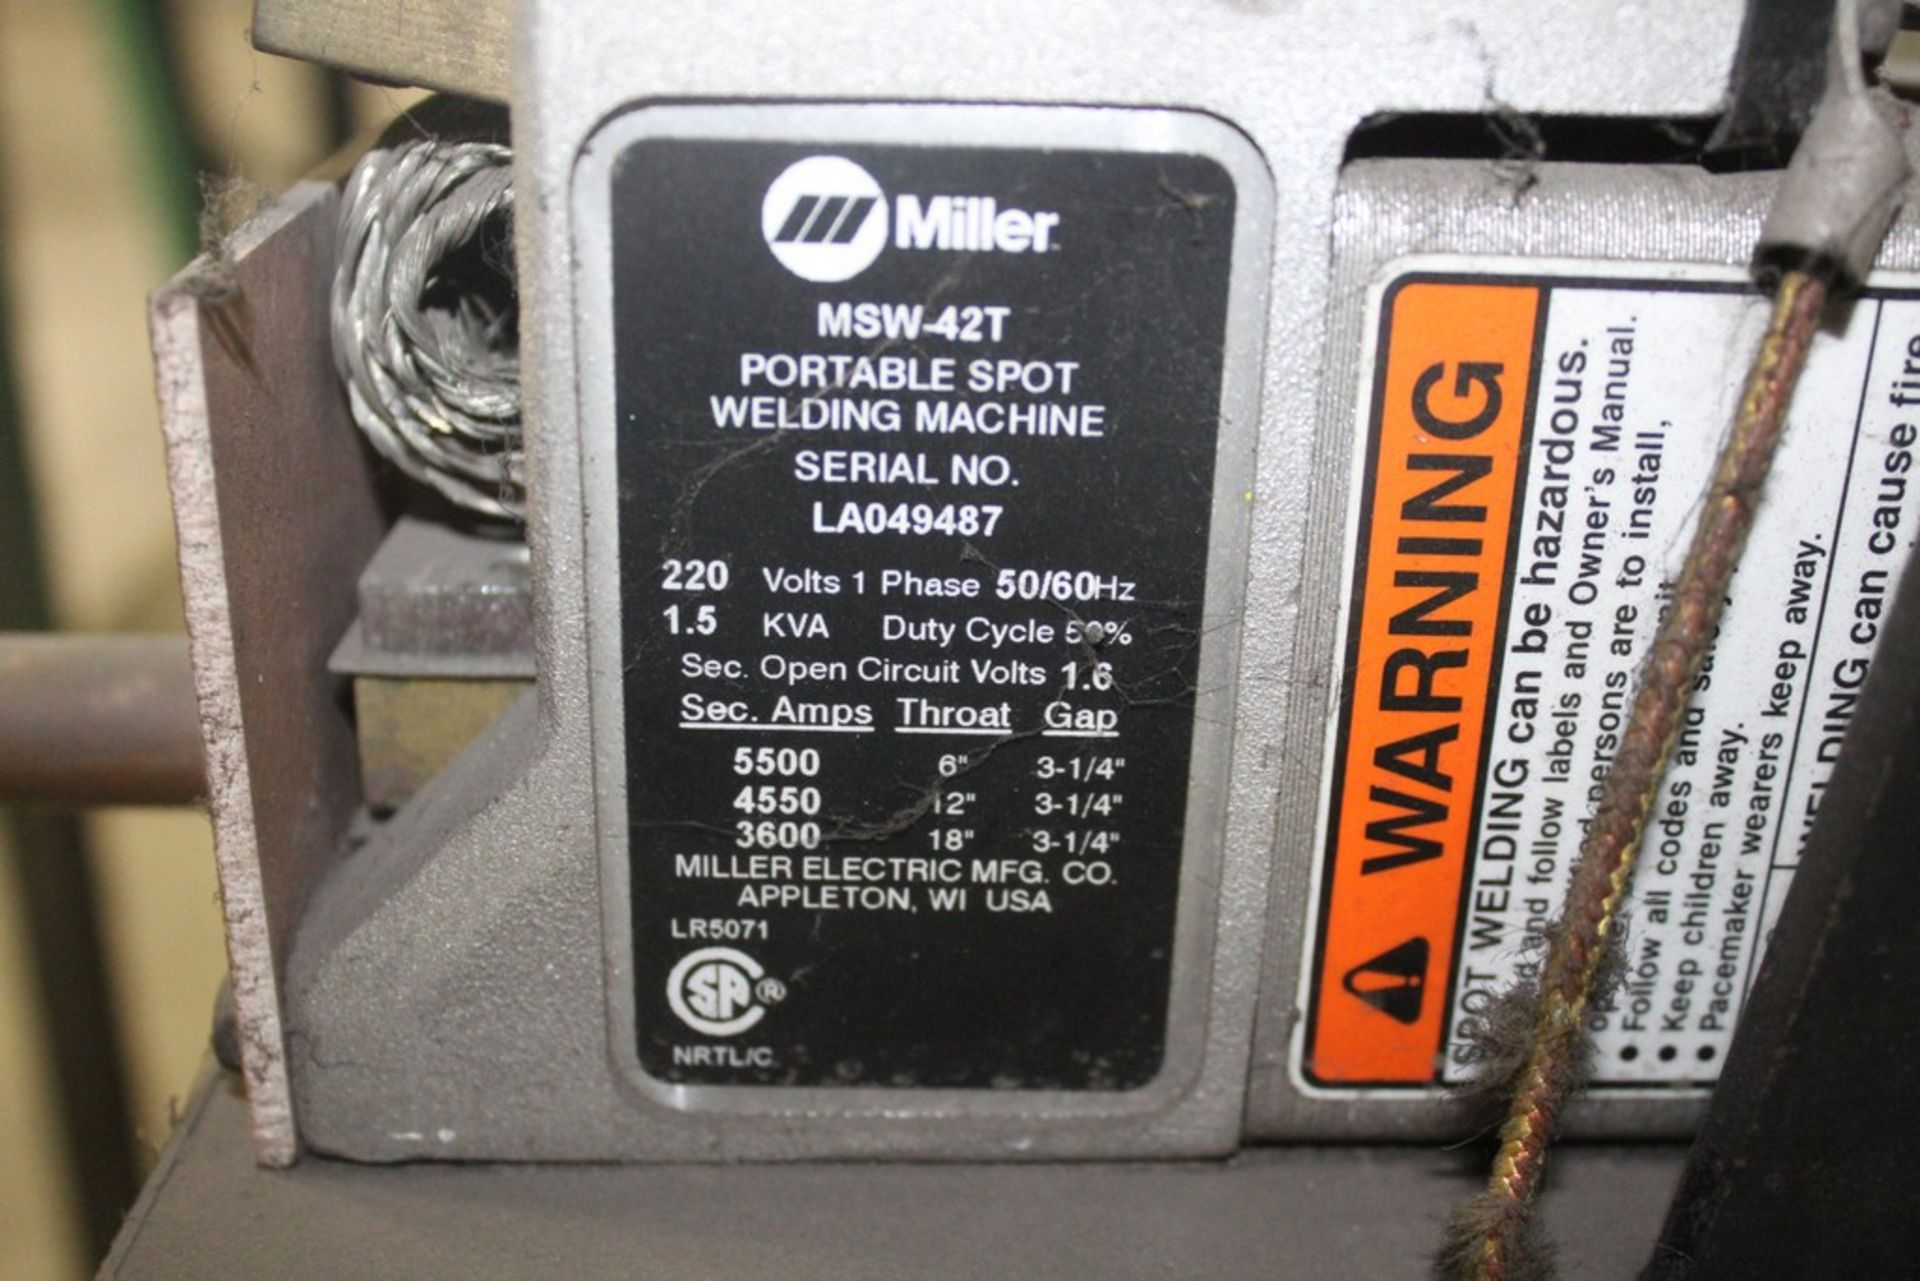 Miller Model MSW-42T Single Phase 1.5 KVA Spot Welder, Serial Number: LA049487 - Image 4 of 5